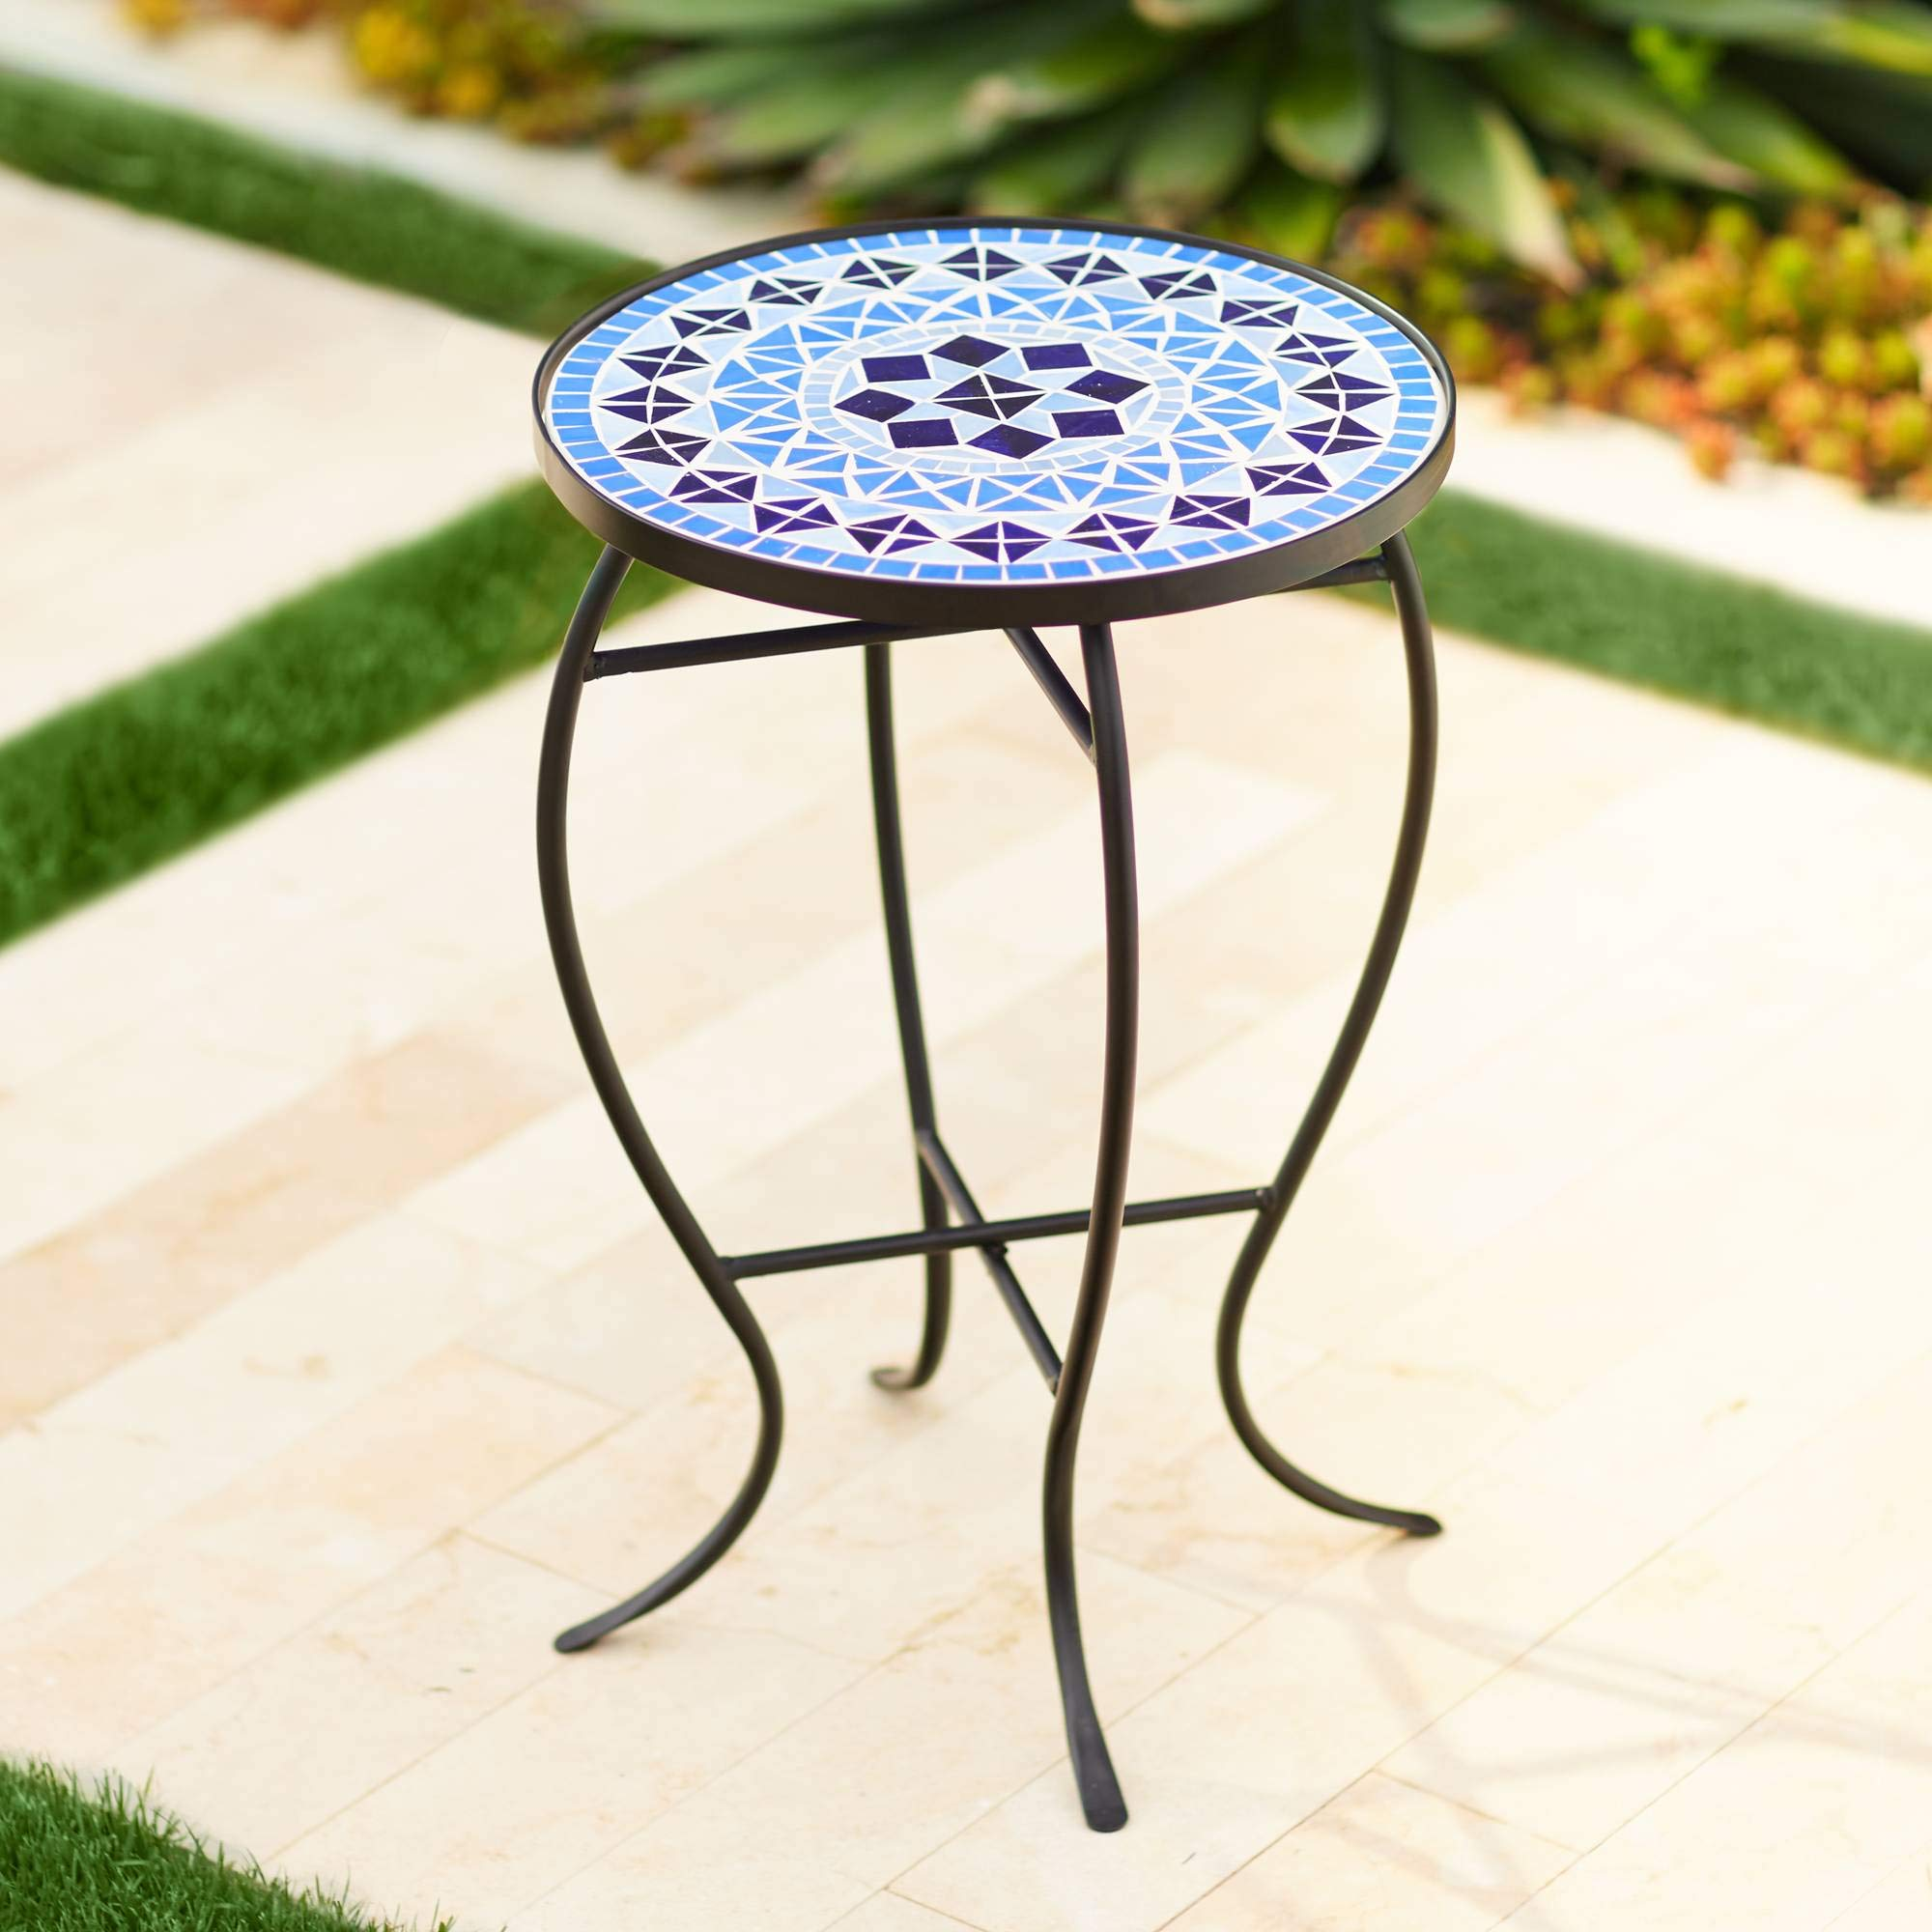 Teal Island Designs Cobalt Mosaic Black Iron Outdoor Accent Table by Teal Island Designs